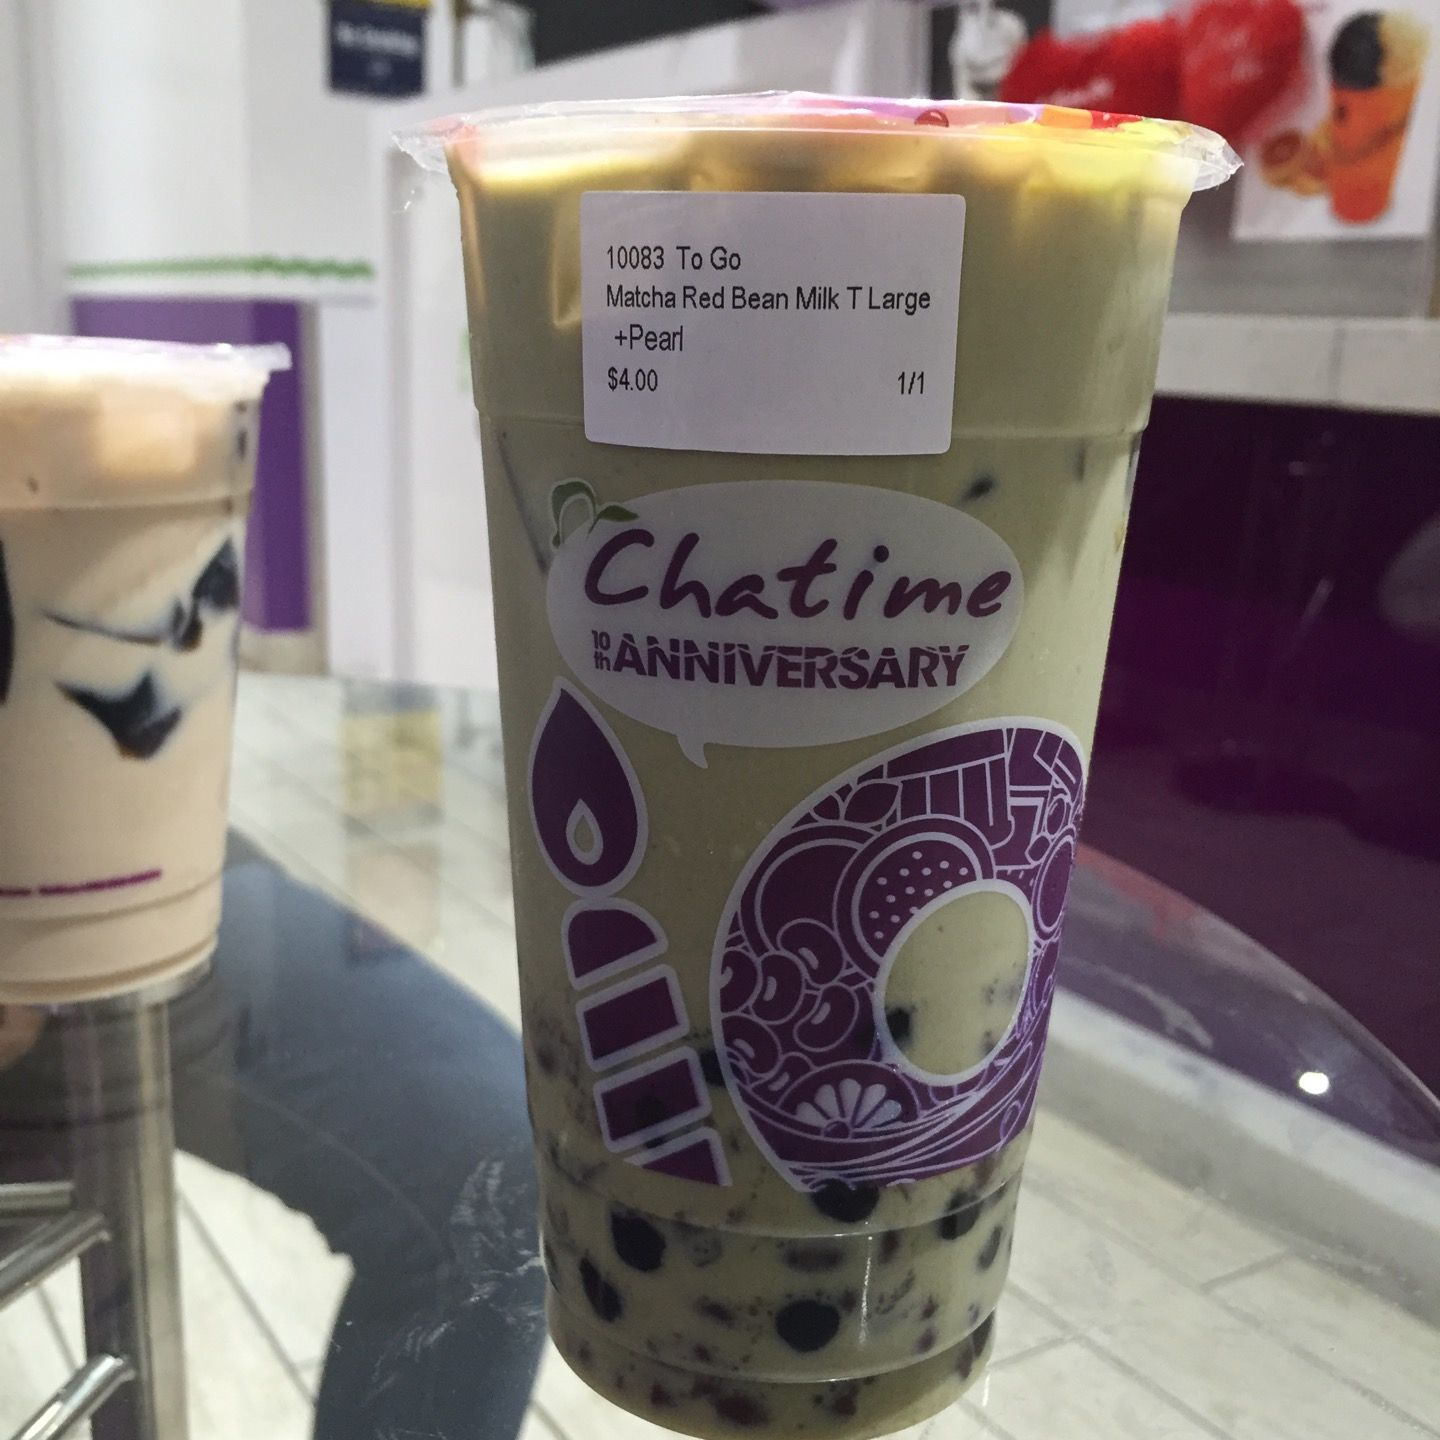 Chatime herbal tea - See 21 Photos And 8 Tips From 297 Visitors To Chatime My Go To Drink For Bubble Tea Is Grapefruit Green Tea No Sugar Or Boba Is Needed Bc The